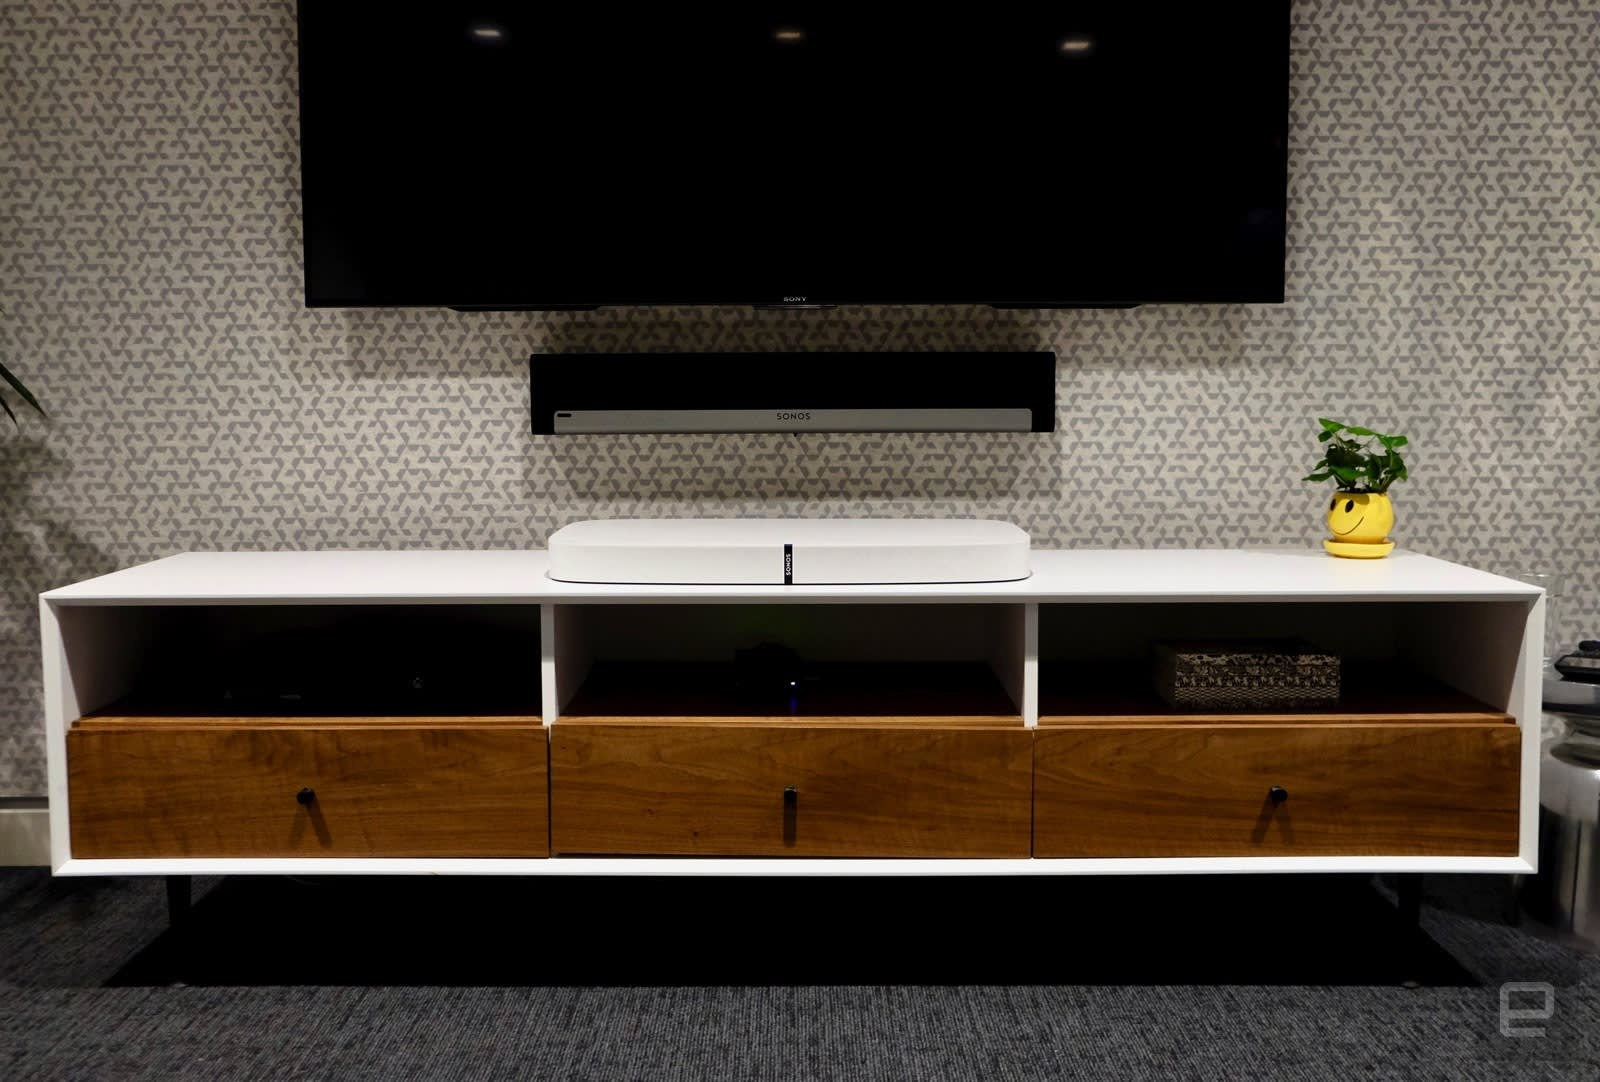 Sonos PlayBar and PlayBase